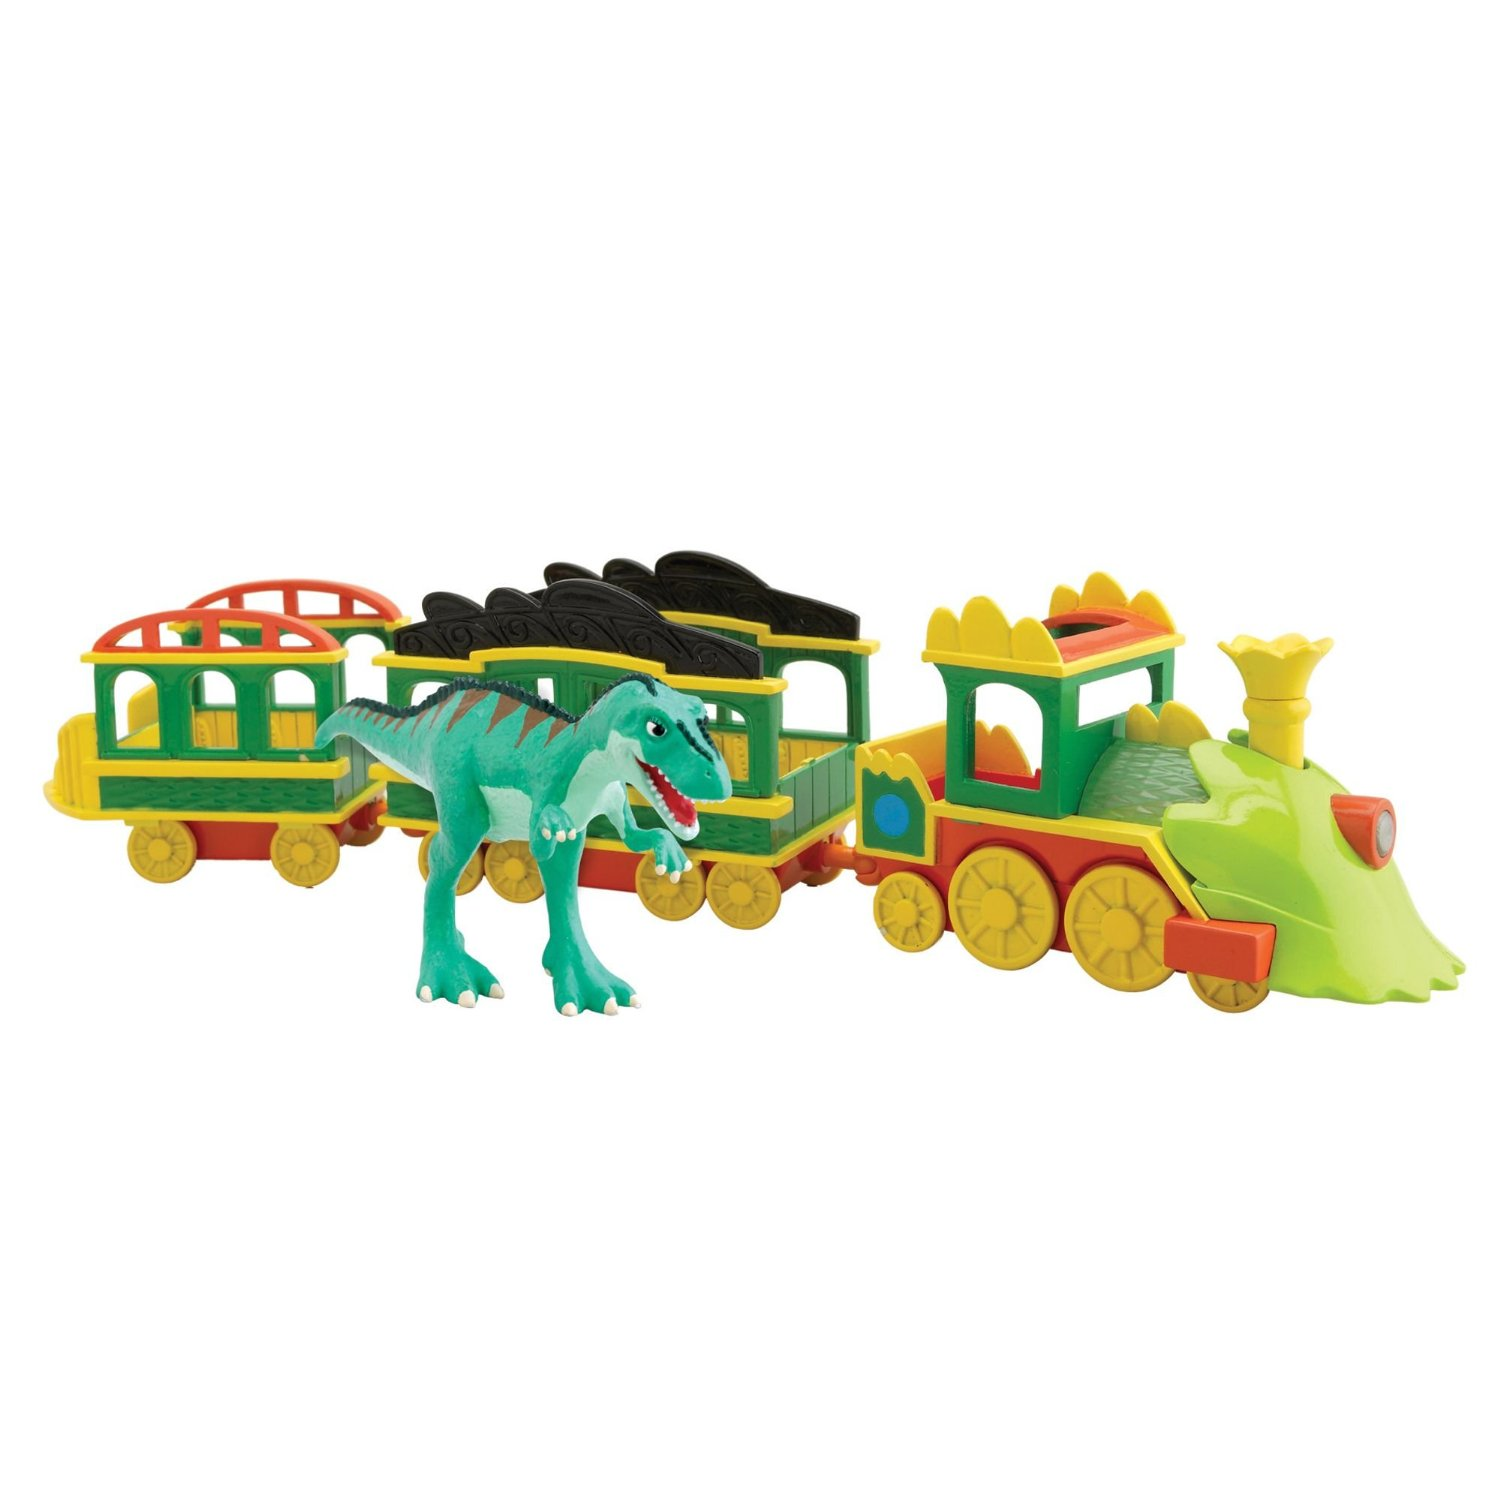 Dinosaur Train Toys : Dinosaur train lights sounds with laura in the